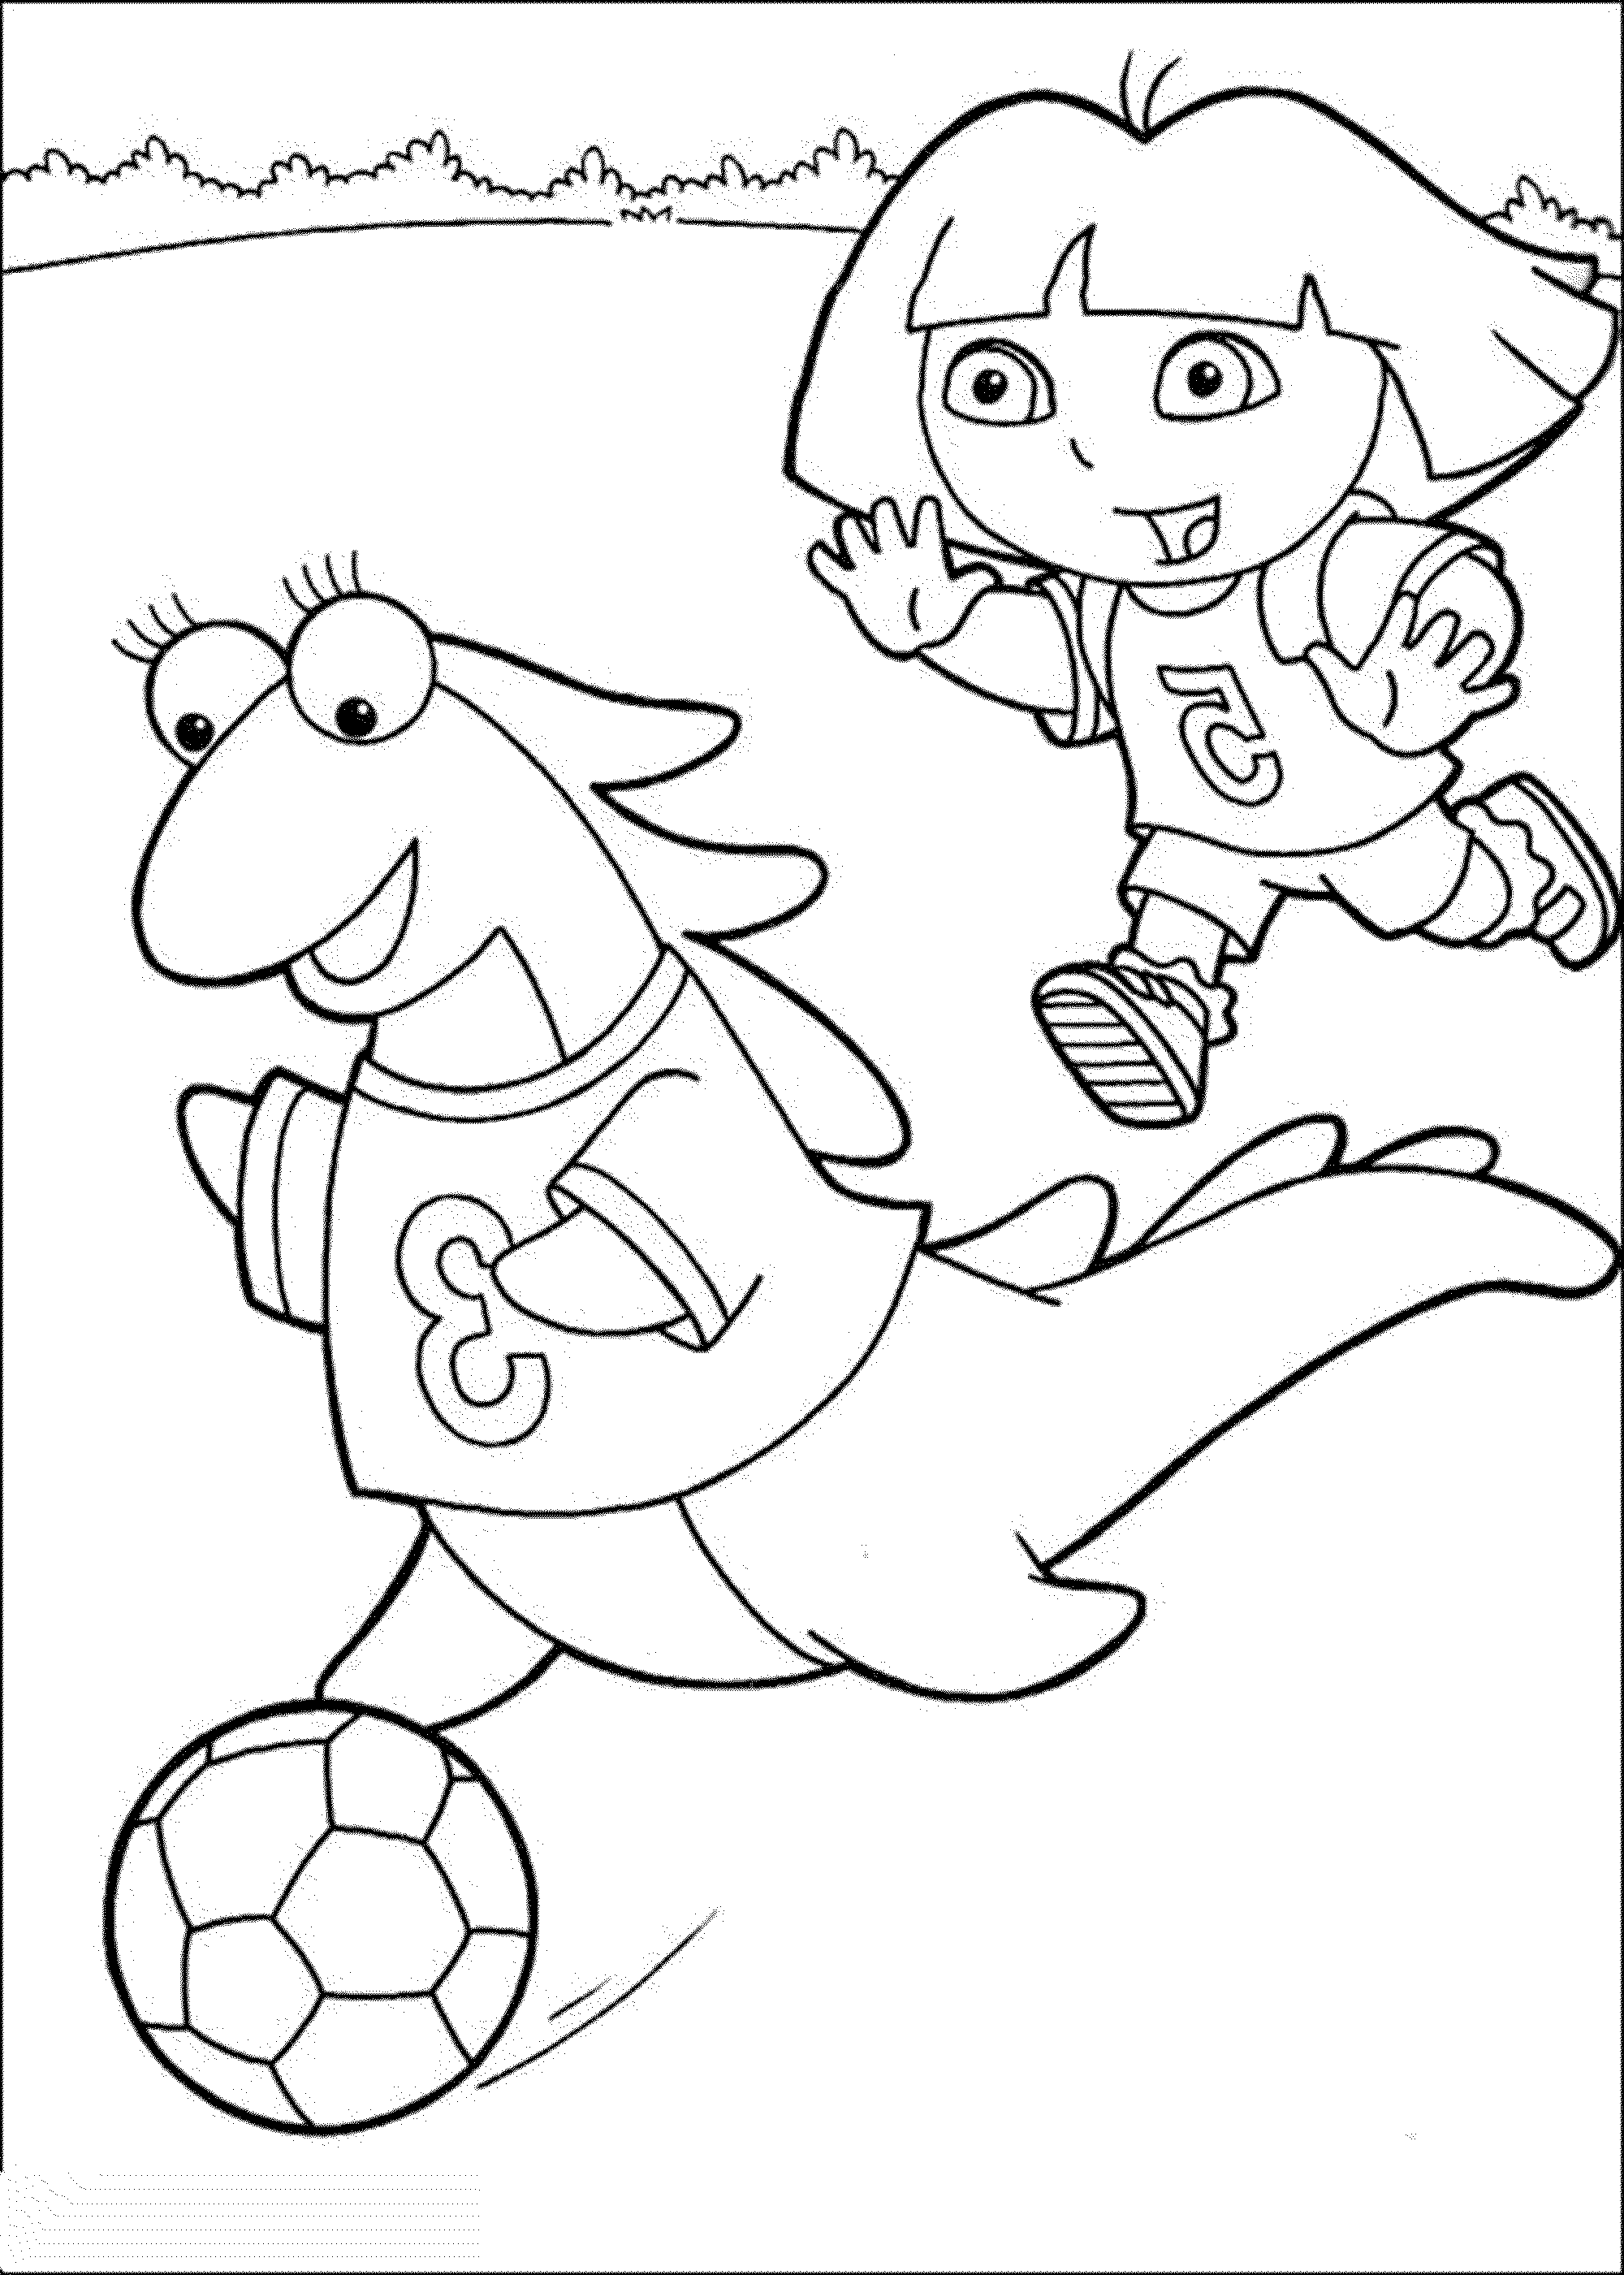 dora to color dora coloring pages diego coloring pages color to dora